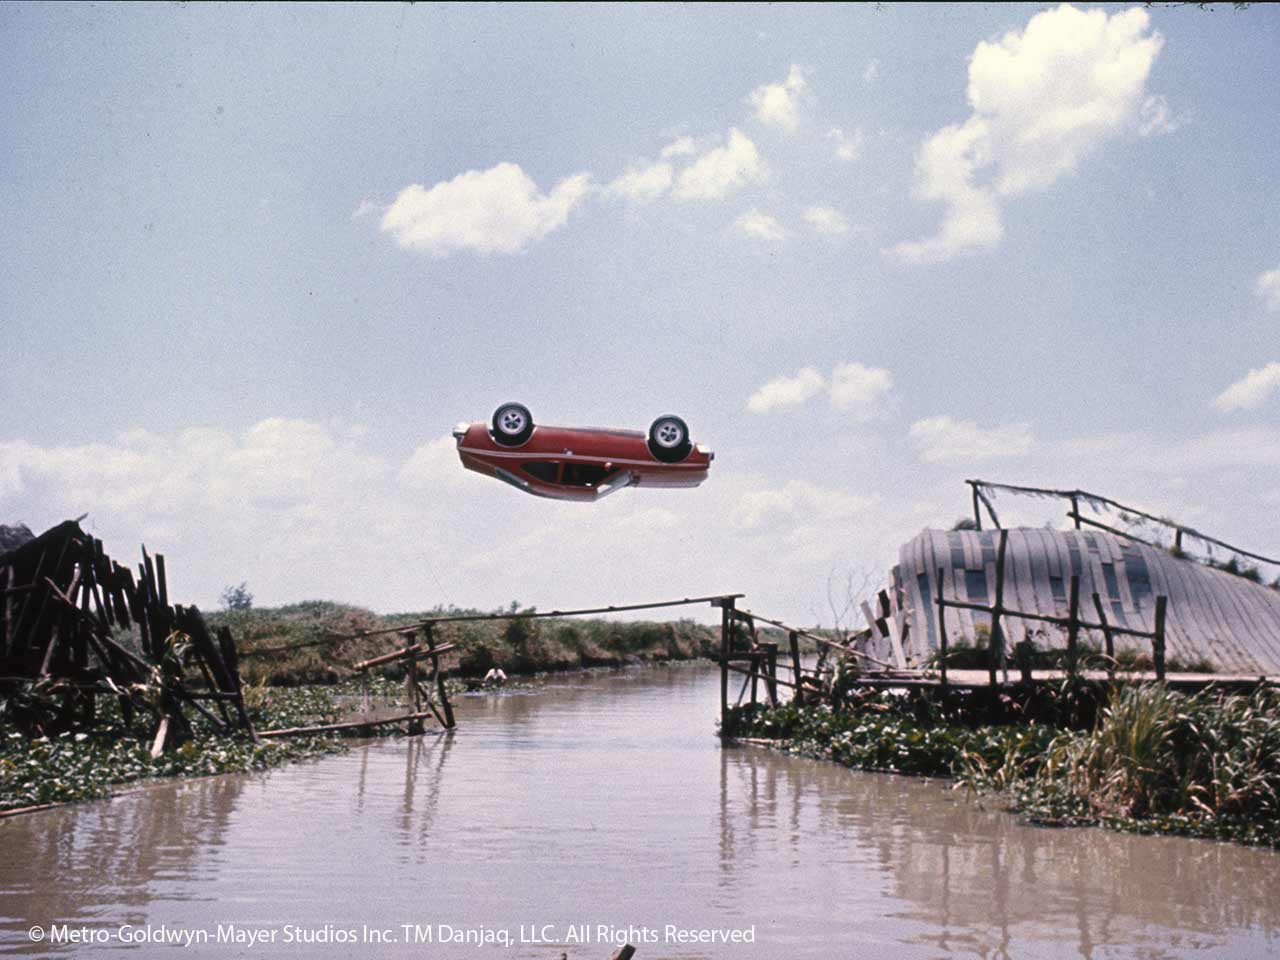 Scaramanga's flying car in Bond film The Man with the Golden Gun